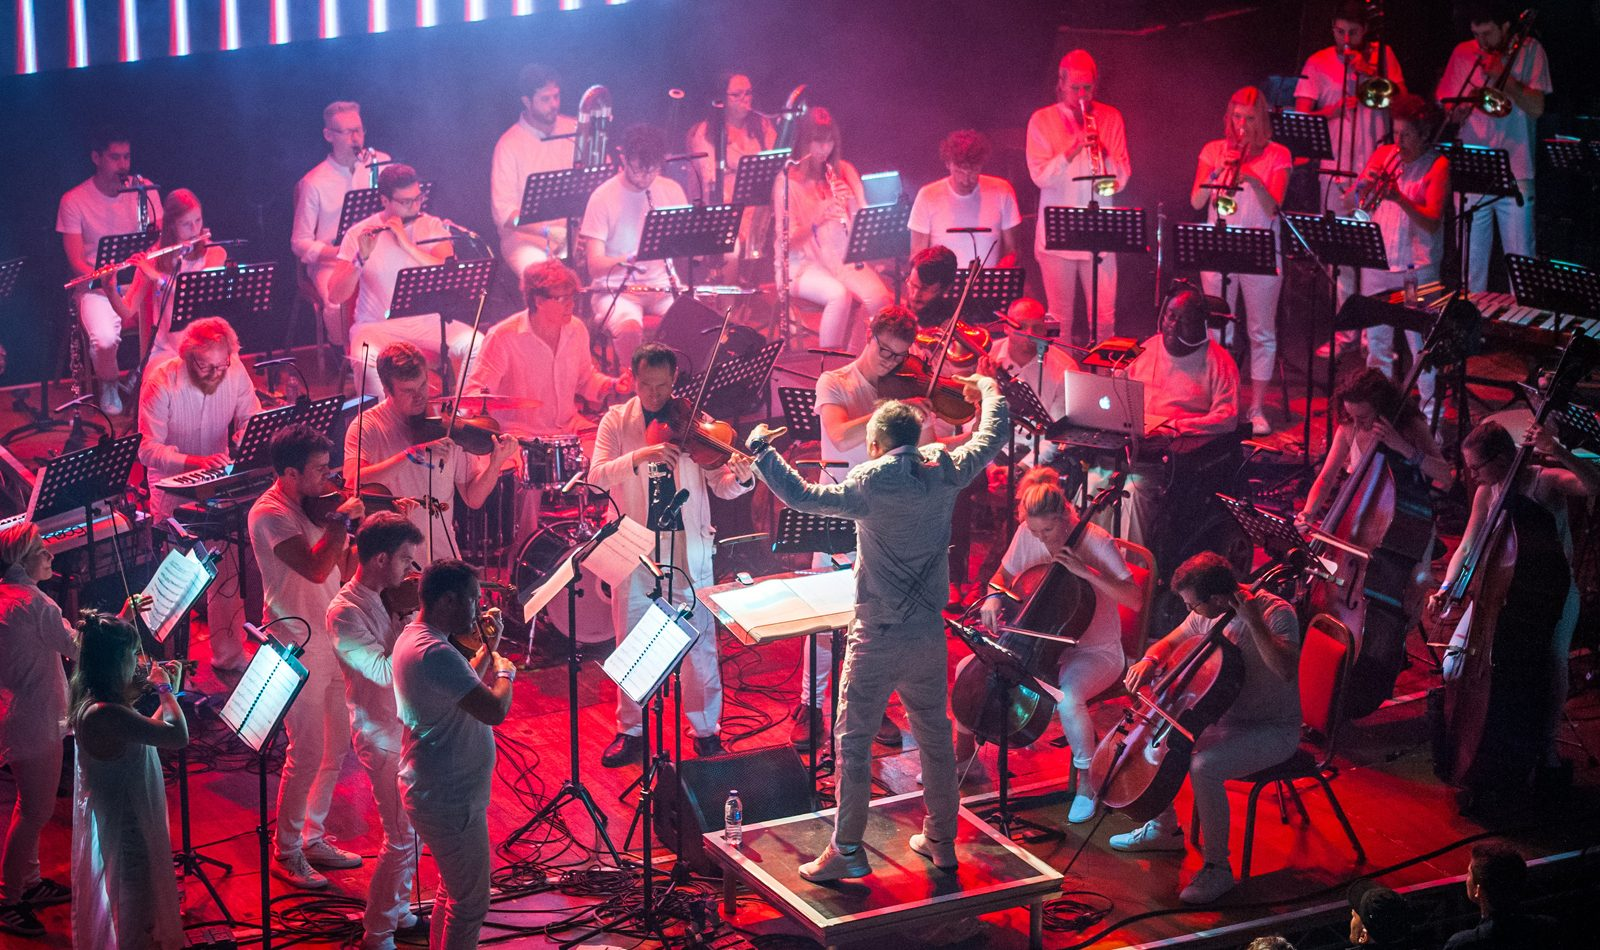 wide view of orchestra members playing on stage at Colston hall, dramatic red lights, Charles Hazlewood conducts with his back to the camera